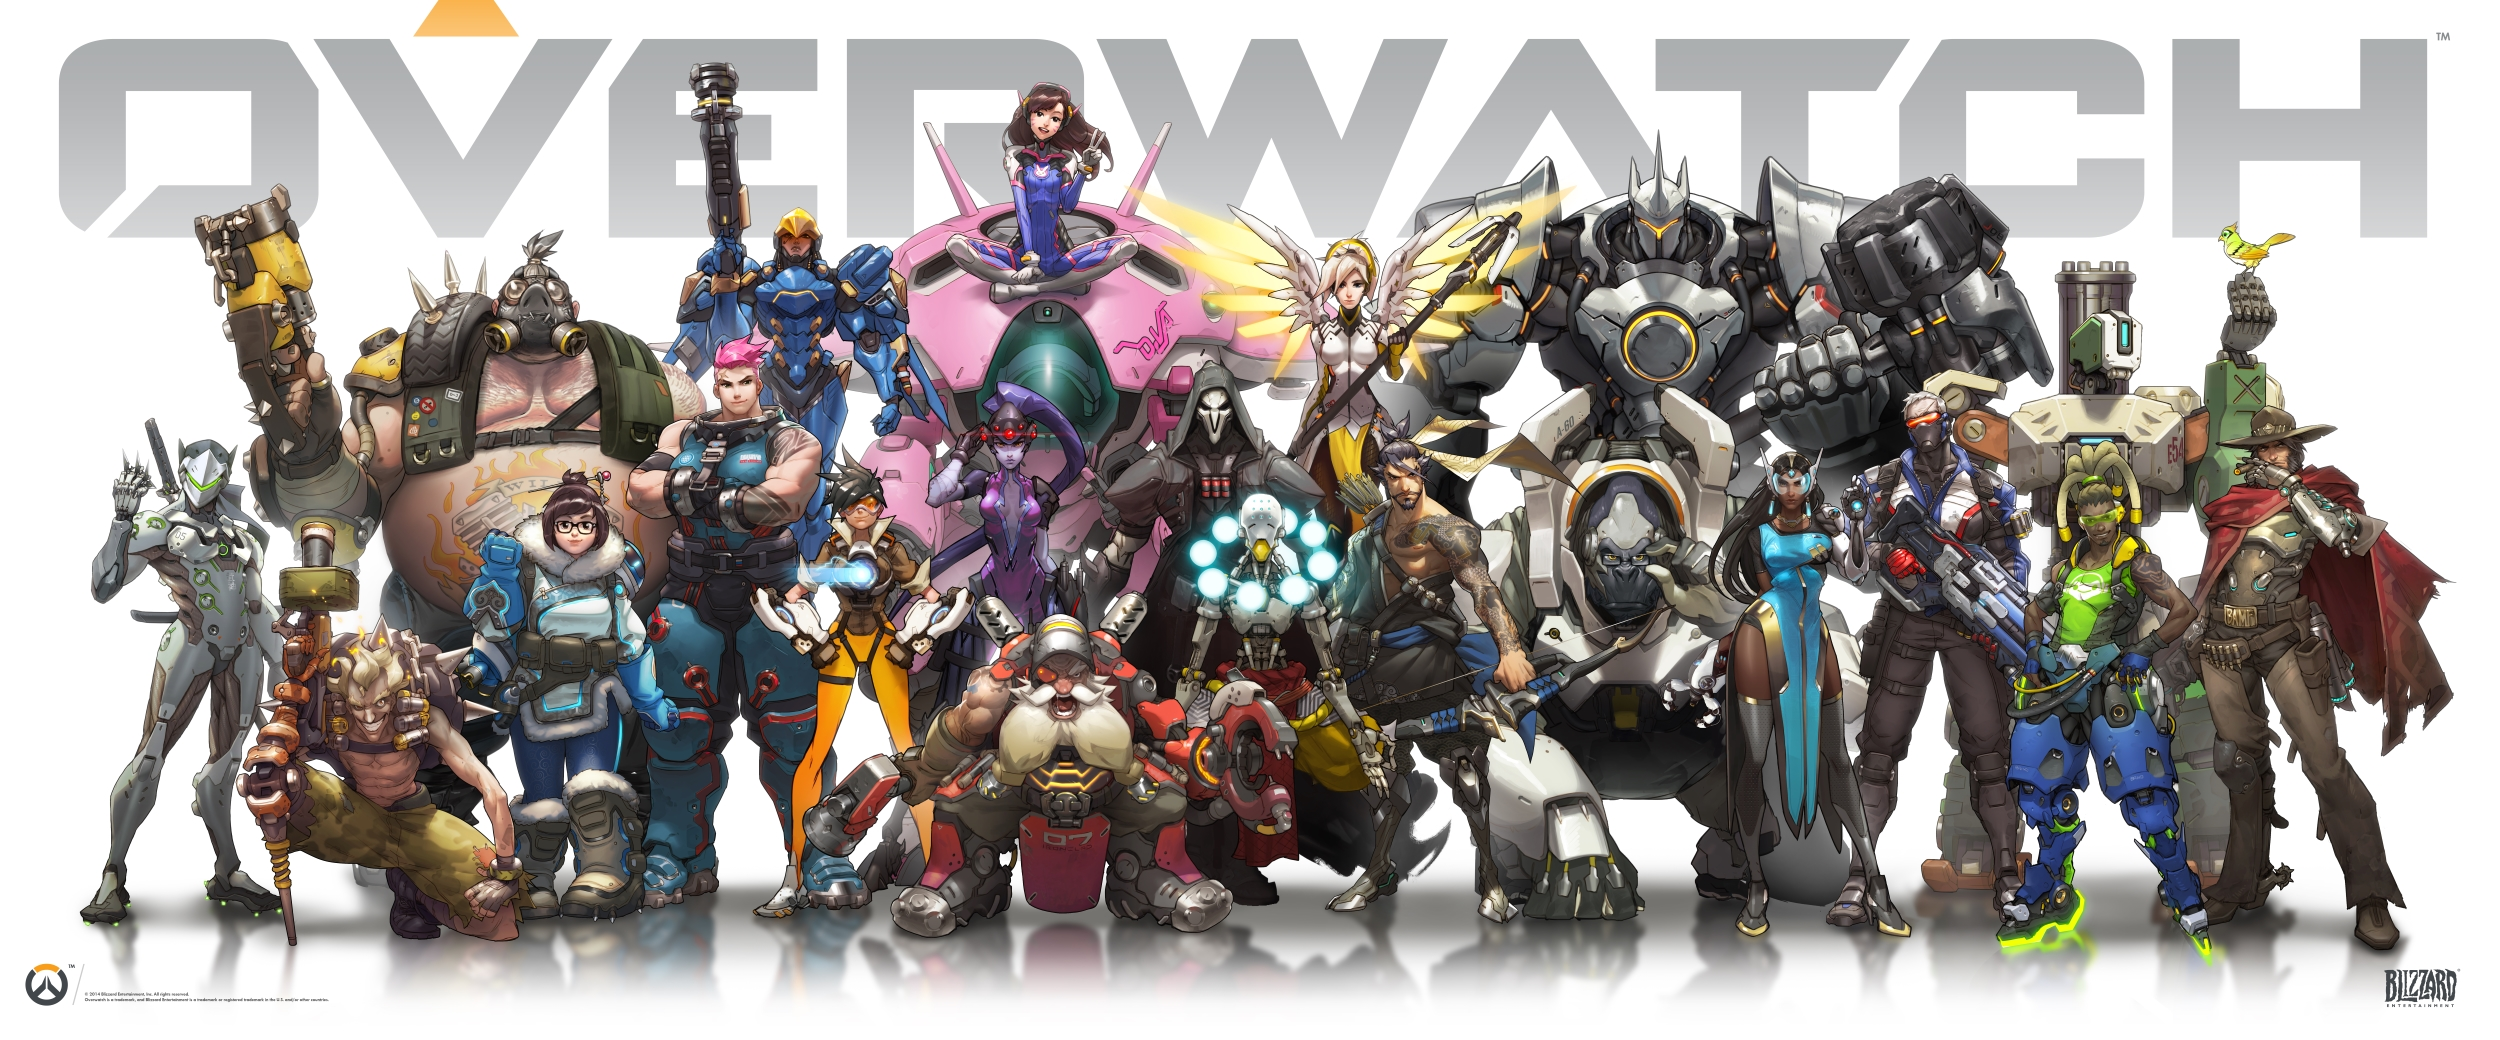 Overwatch review – first person teamwork